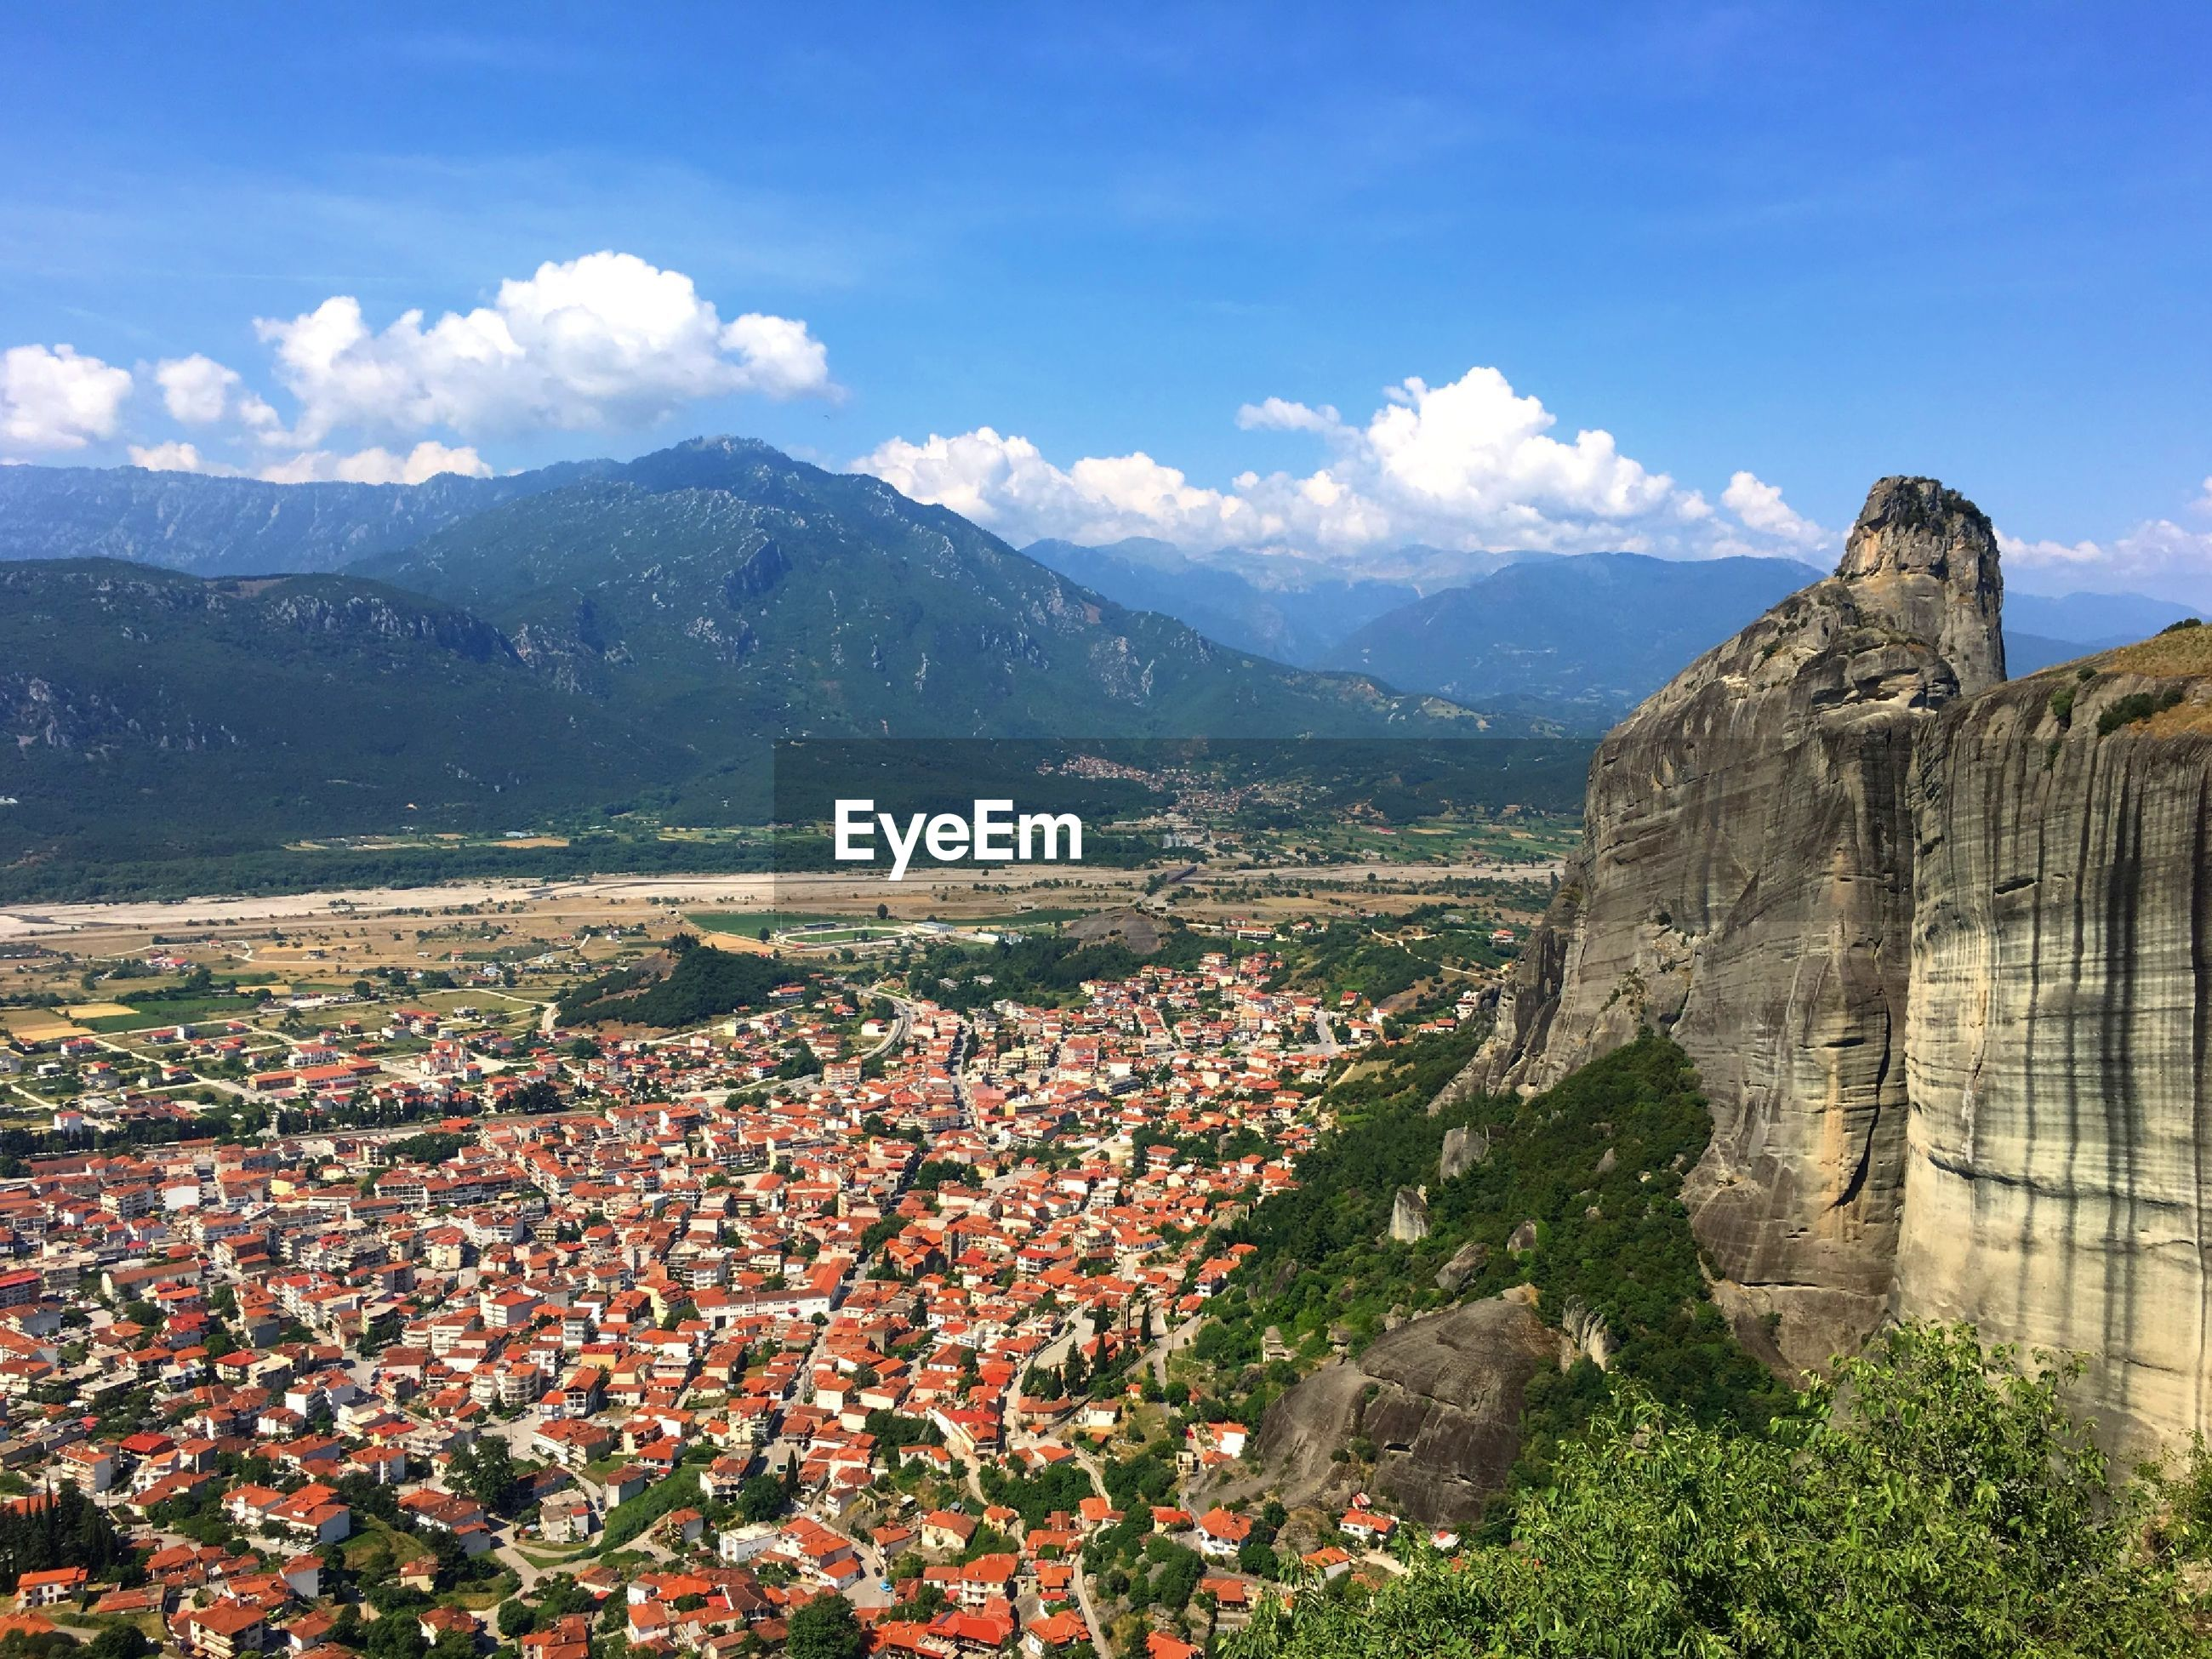 VIEW OF TOWNSCAPE AGAINST MOUNTAIN